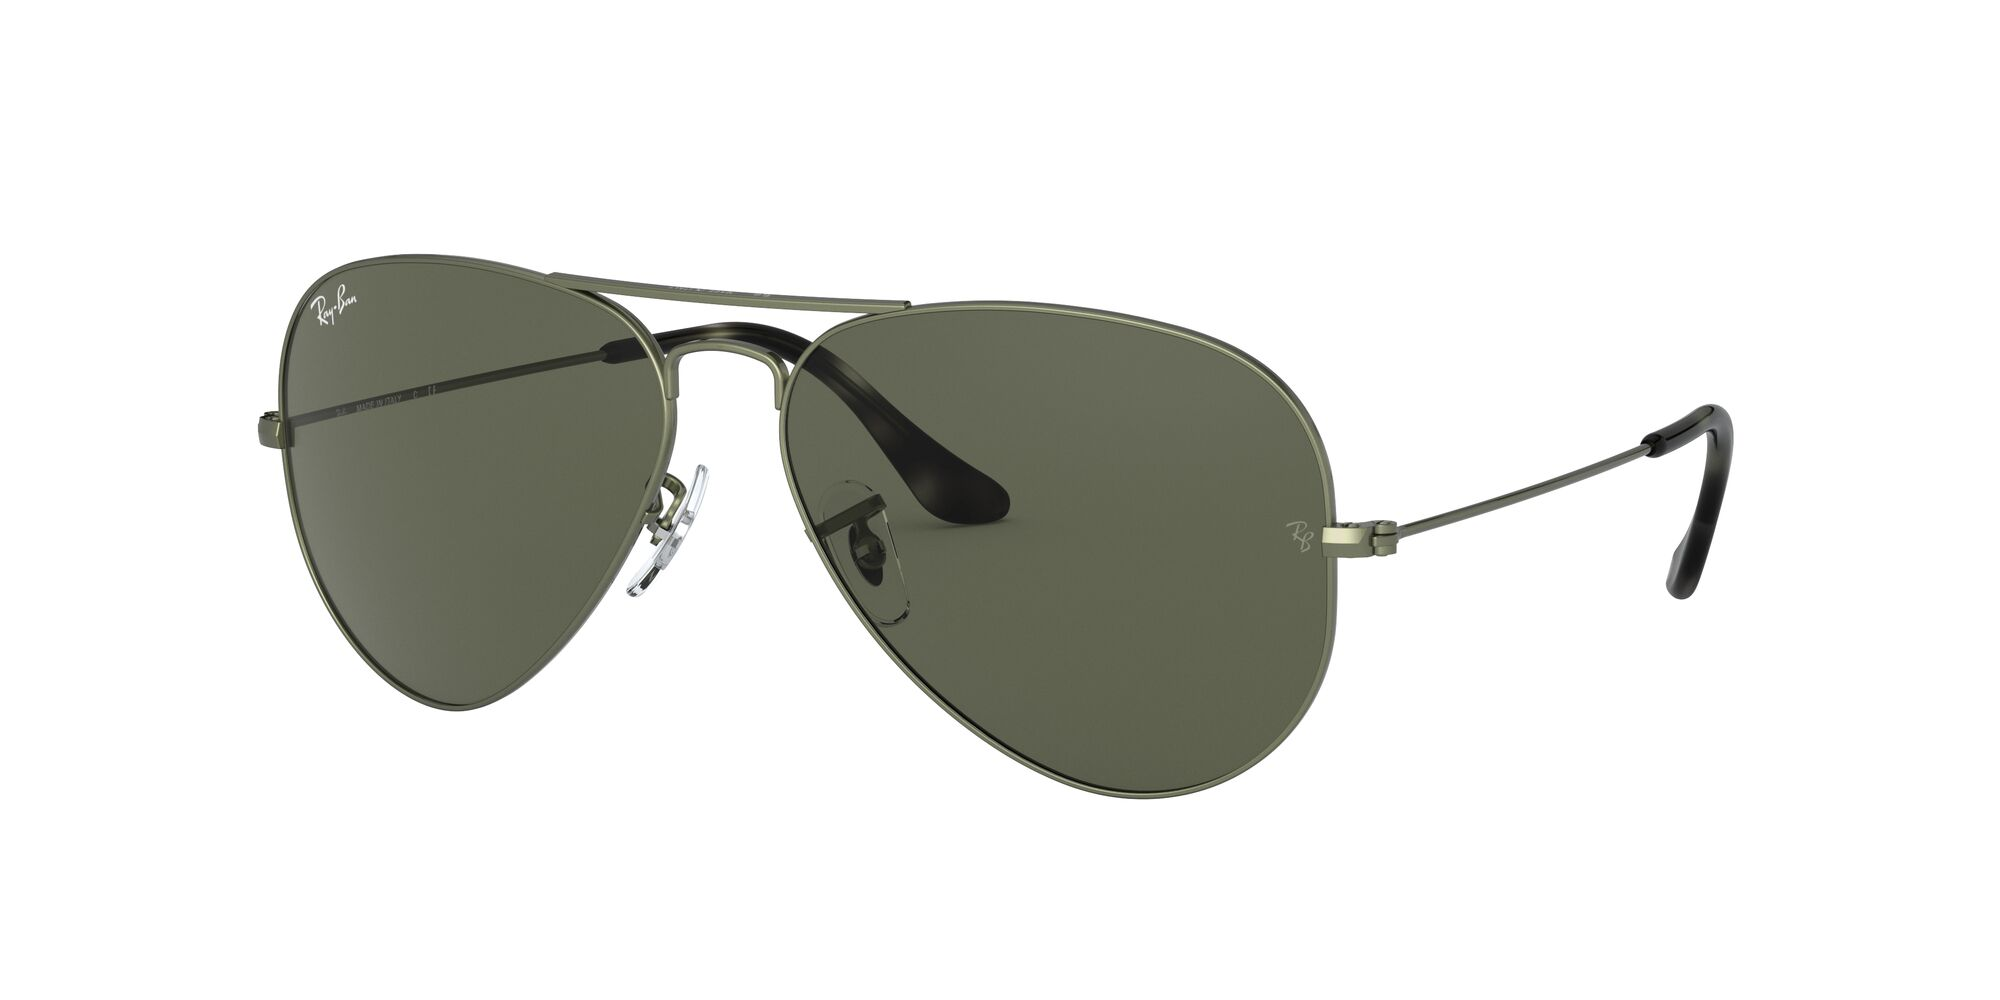 Angle_Left01 Ray-Ban Ray-Ban 0RB3025 919131 62/14 Beige, Green/Groen